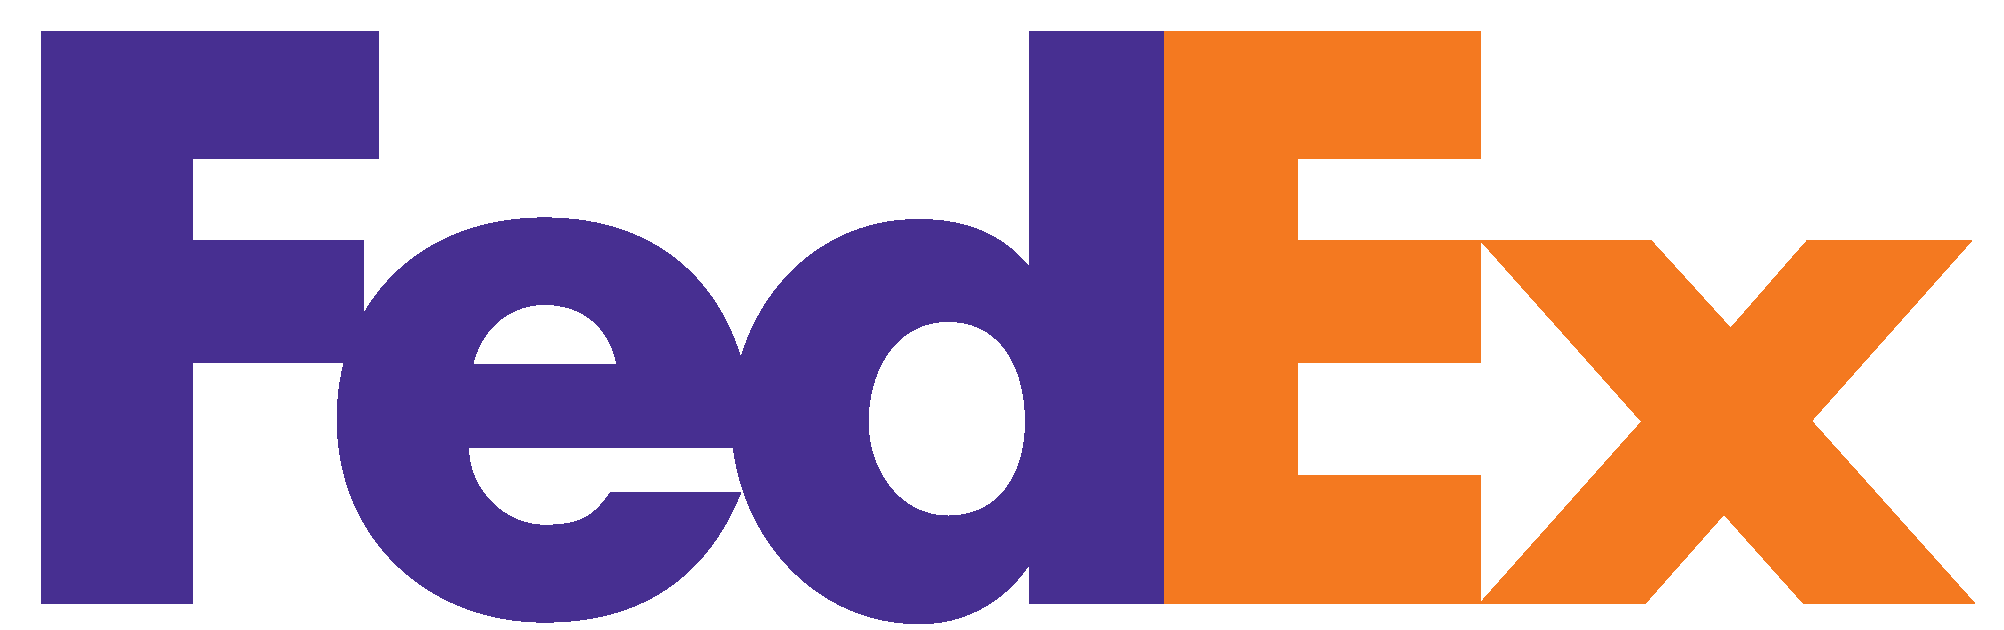 Fedex Logo Hd Full Hd Pictures